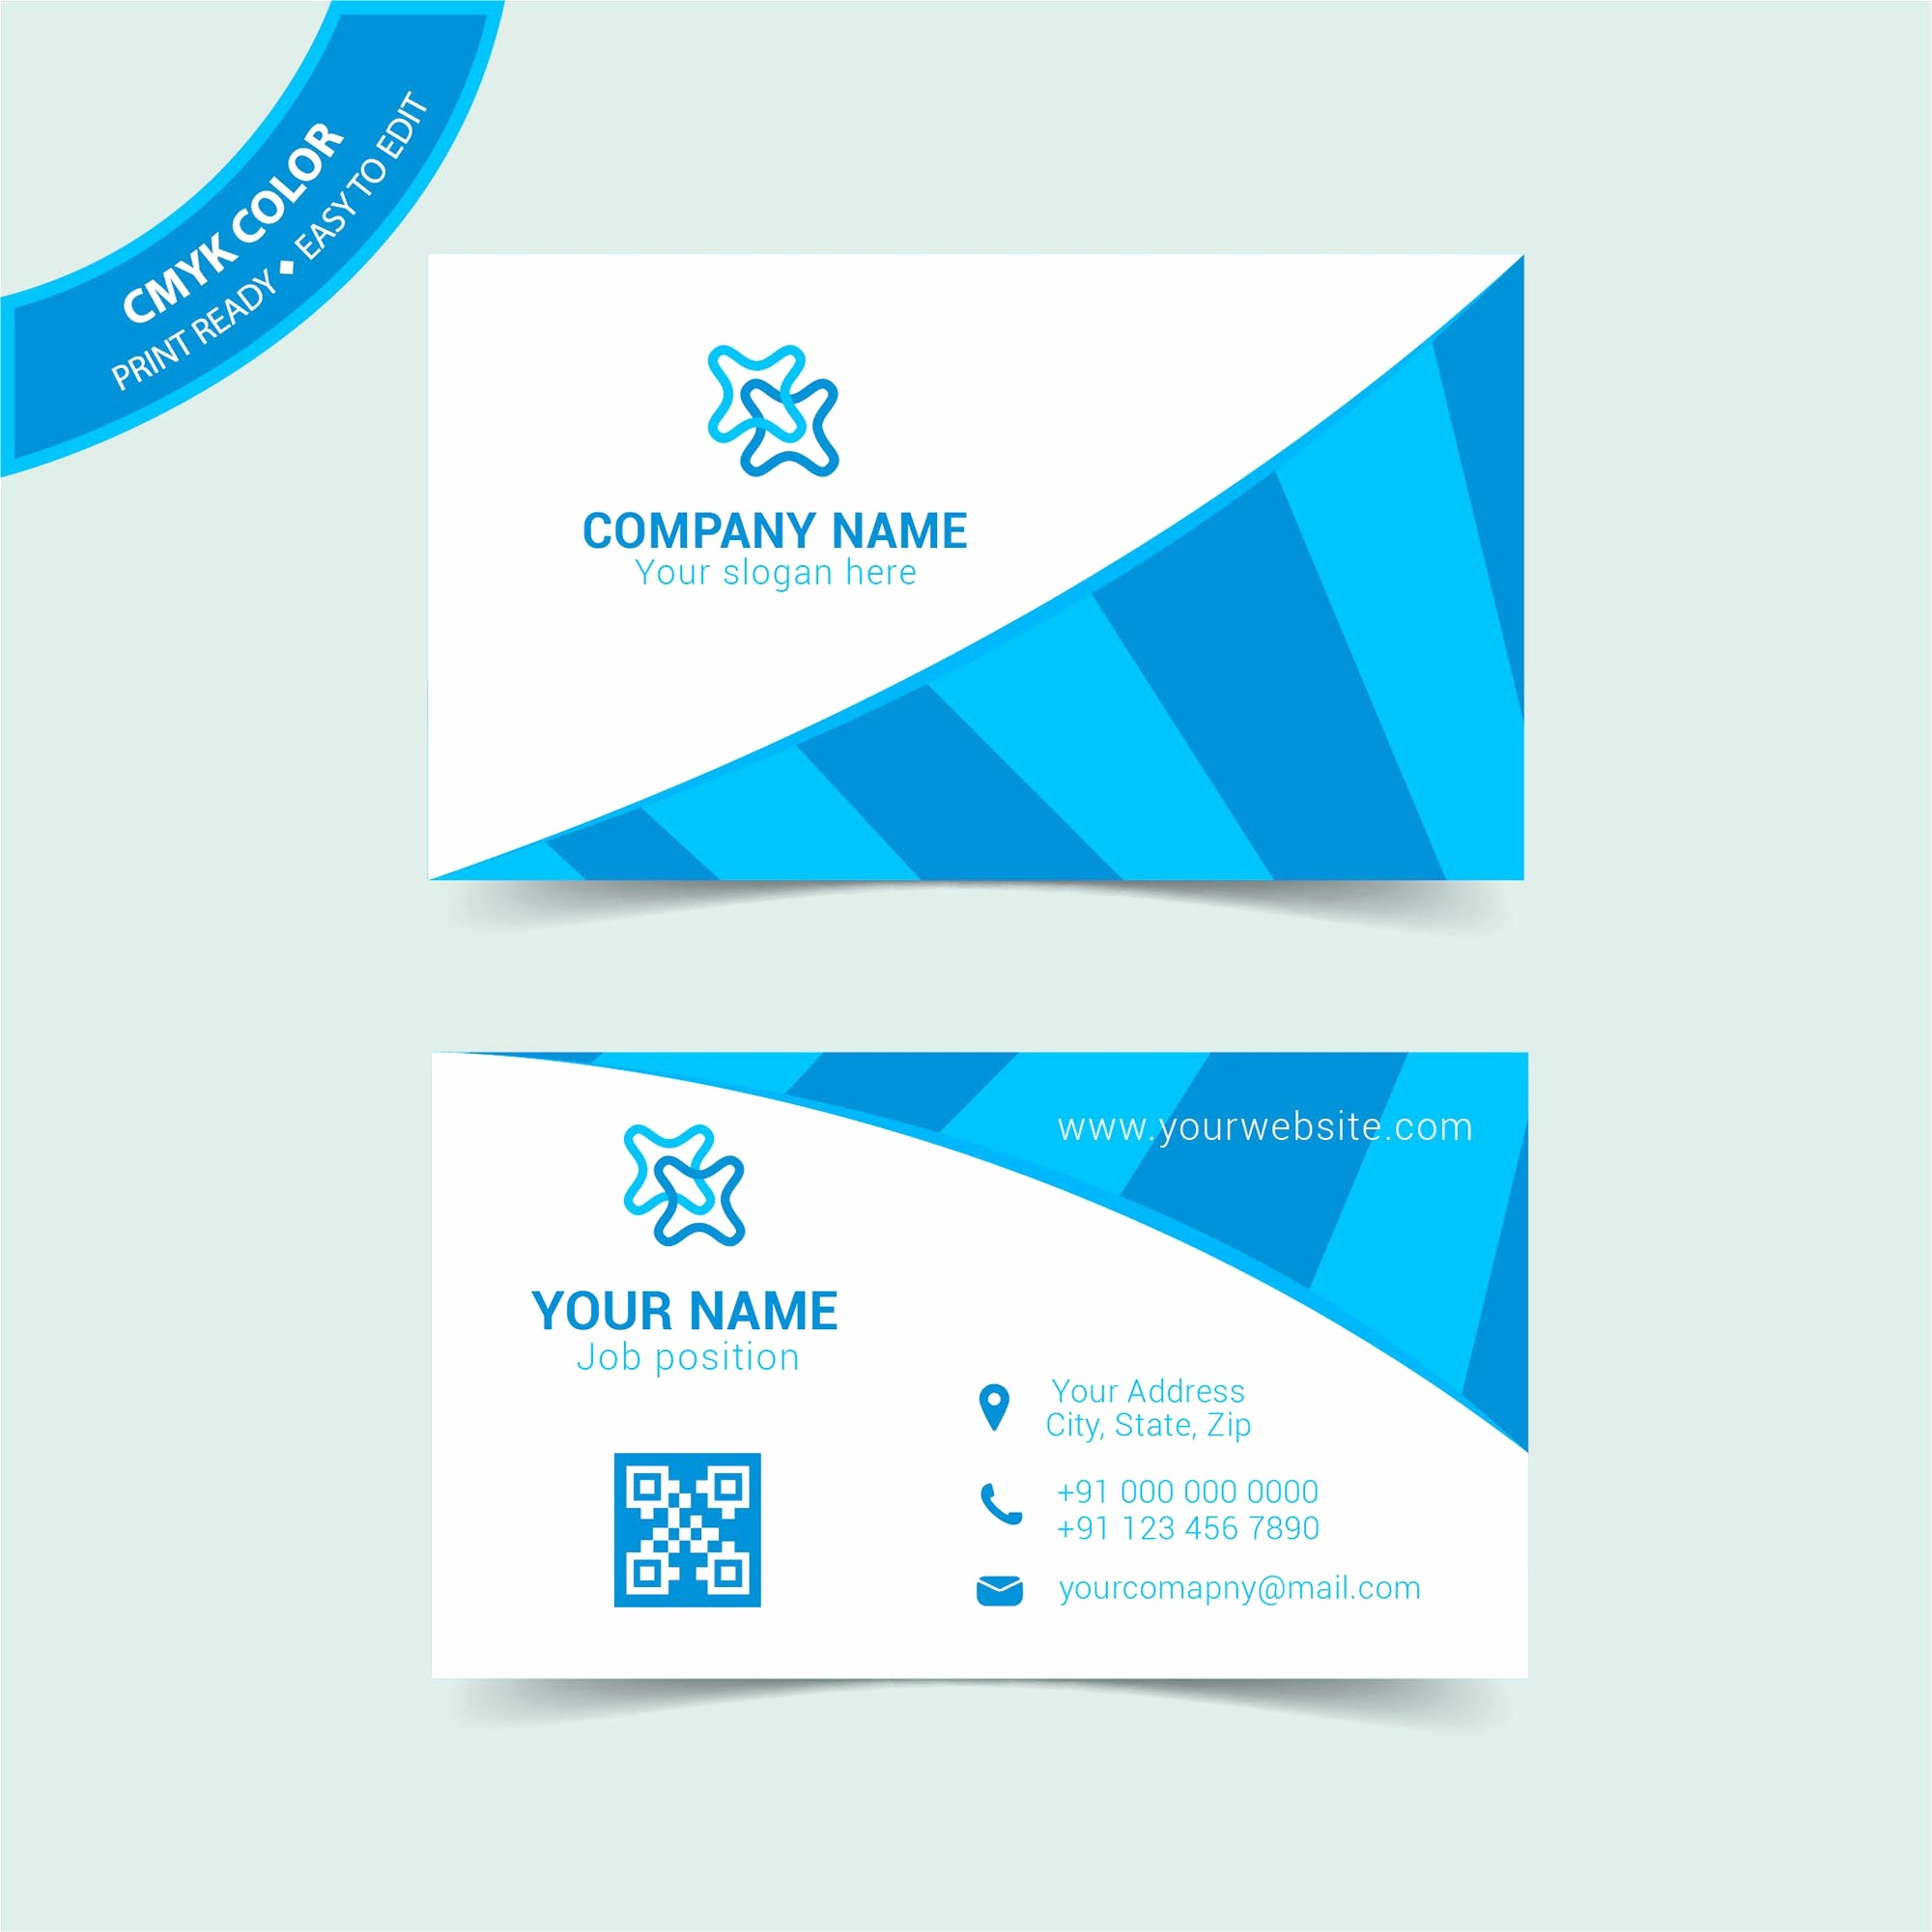 Student Business Cards Templates Free Elegant Latest S College Student Business Card Template